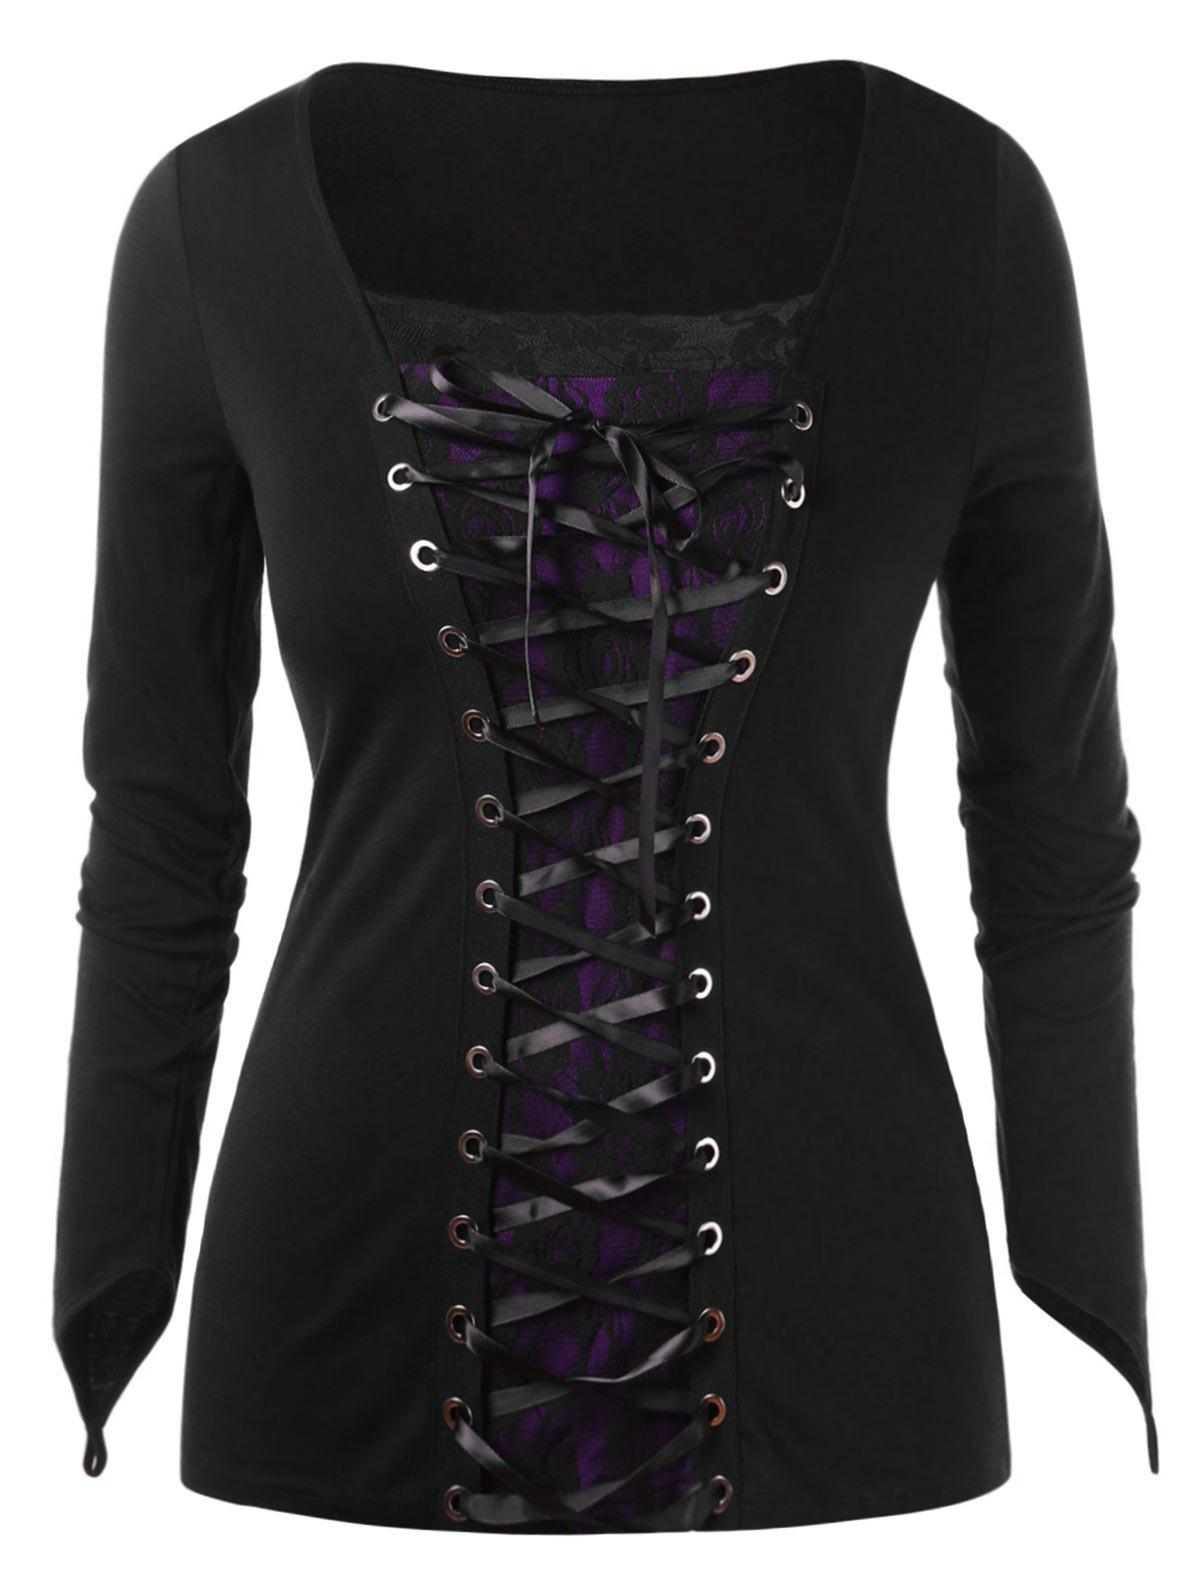 Chic Halloween Plus Size Lace Up T-shirt